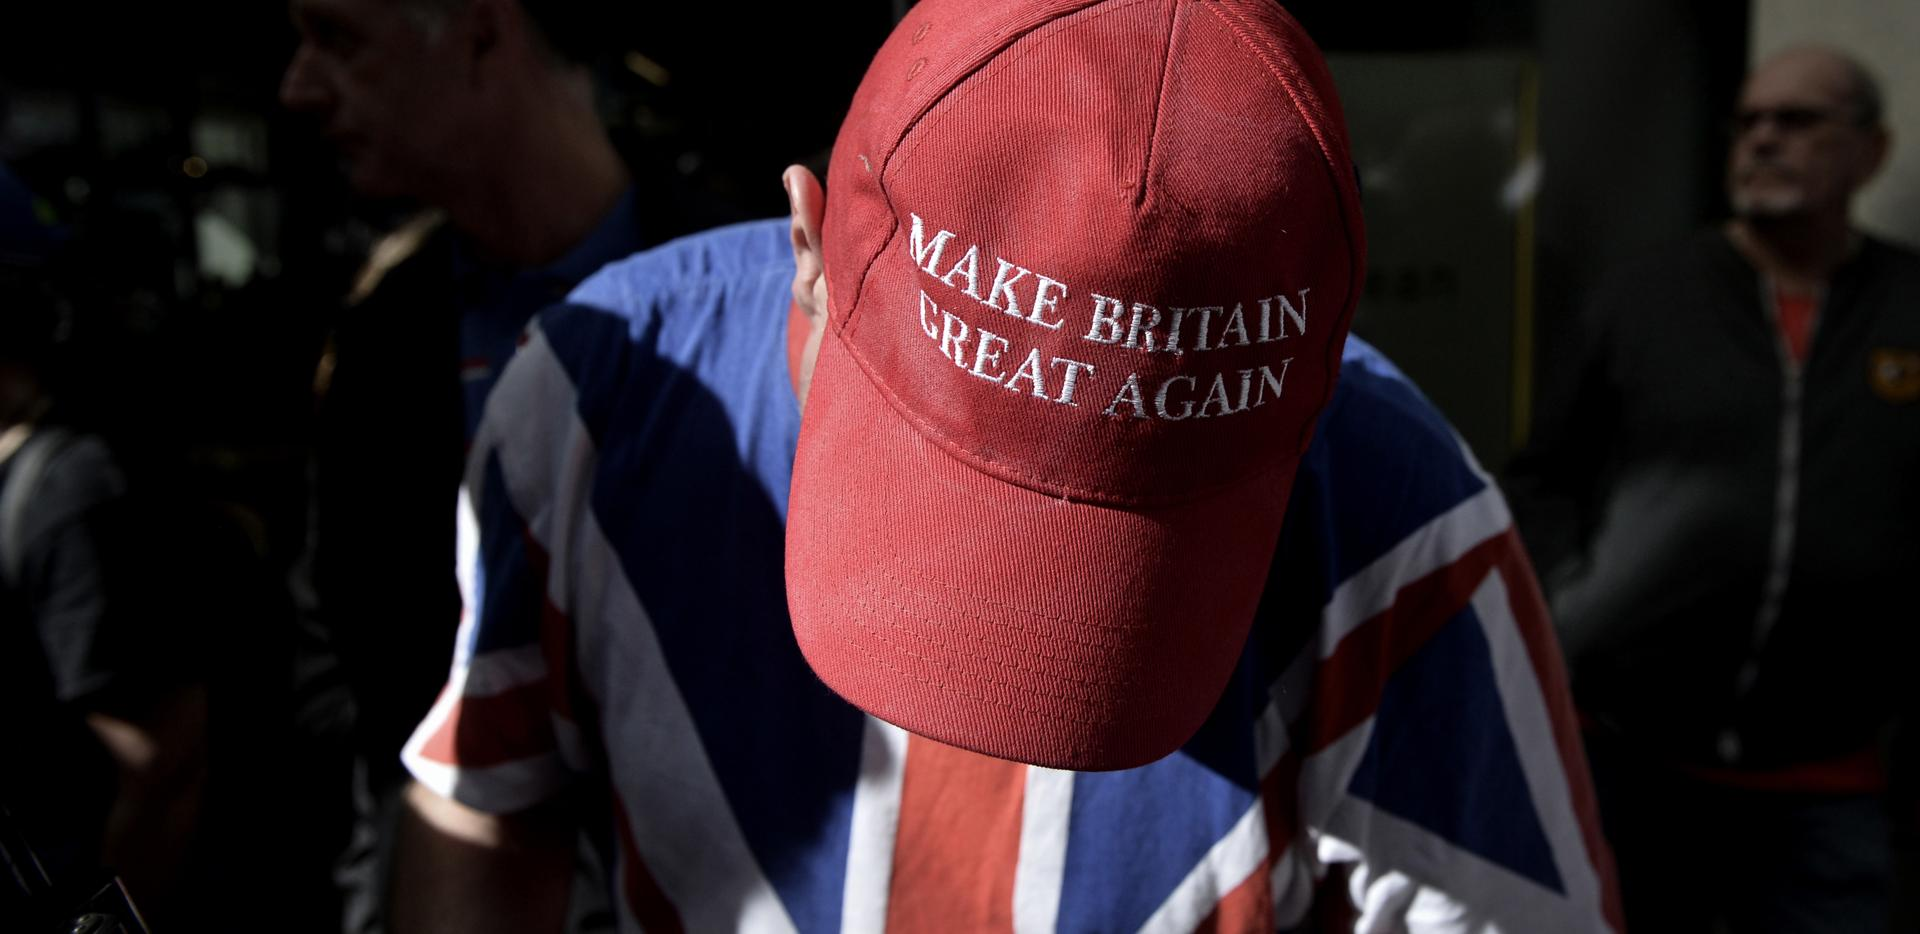 Chris, a supporter of far-right activist Tommy Robinson, wore a Make Britain Great Again cap at a rally.